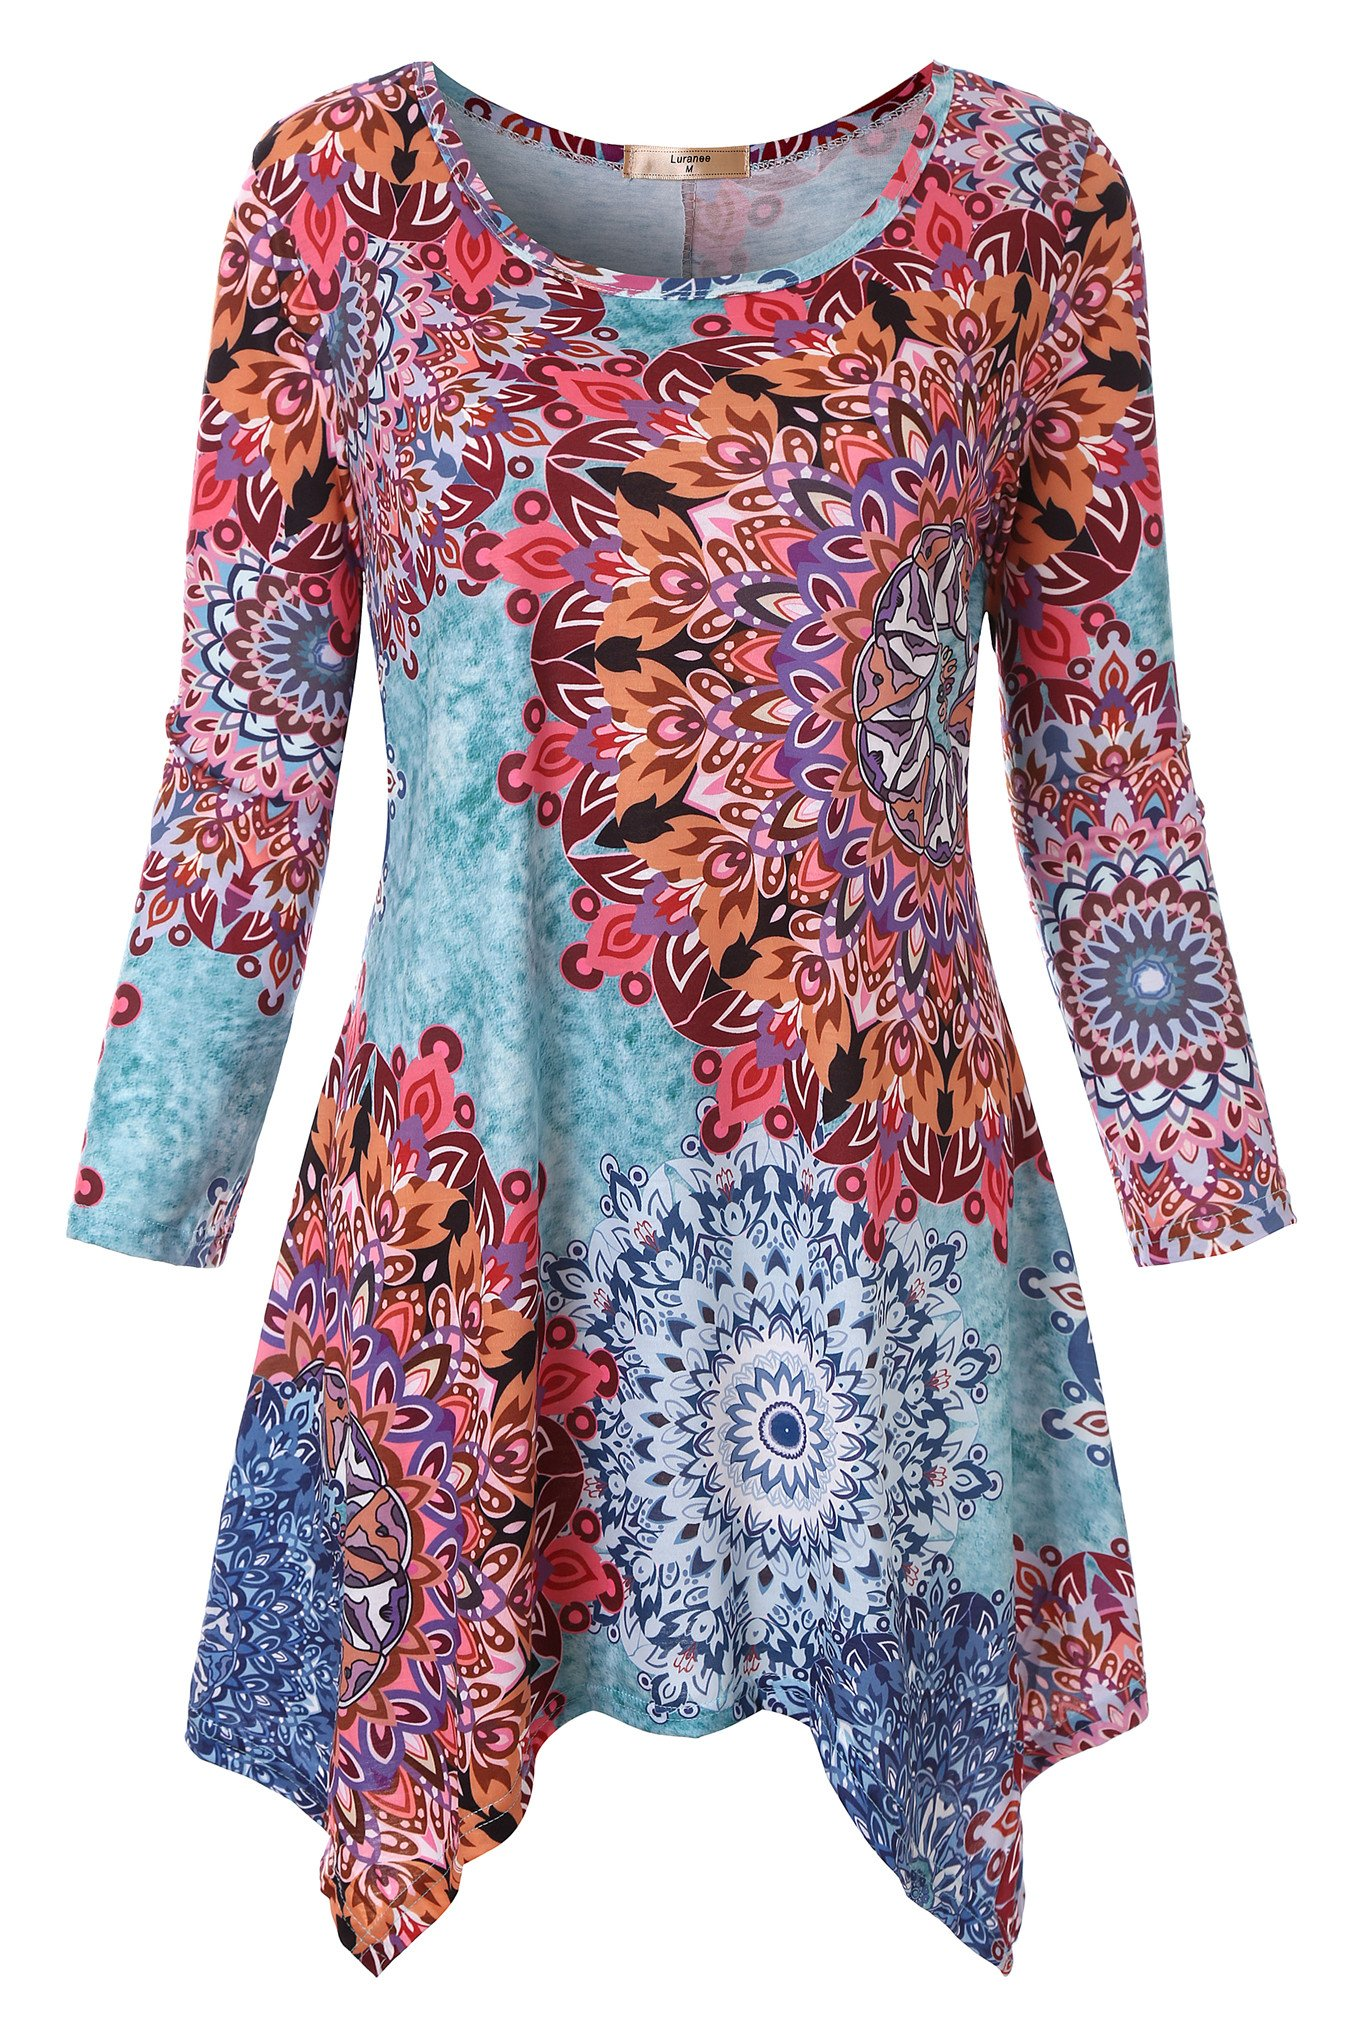 Luranee Women Tops And Blouses Juniors Zulily Tunics Relaxed Fit